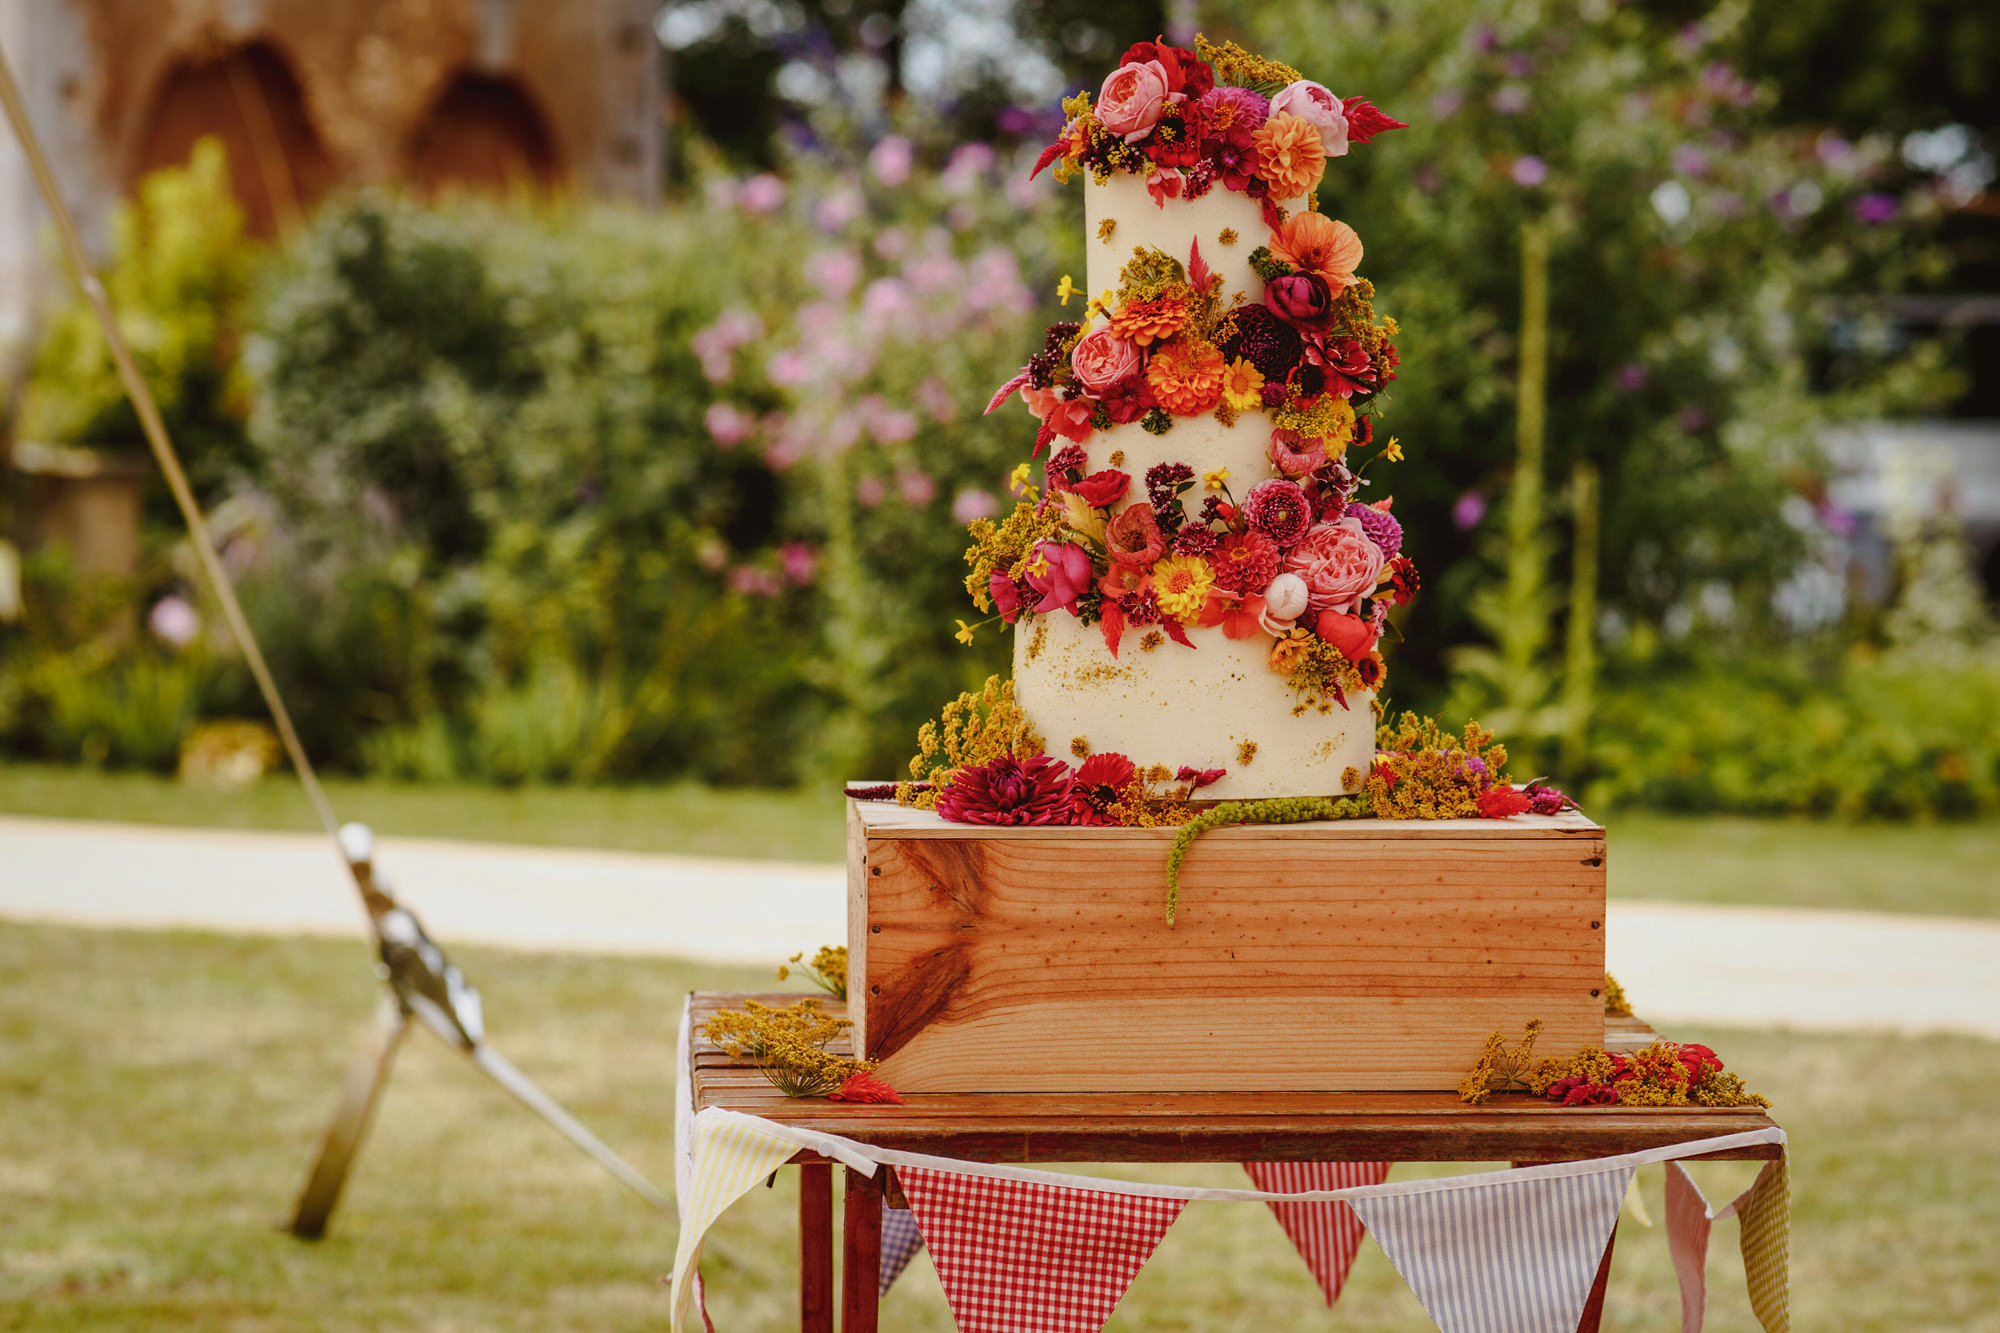 three-tiered-cake-decorated-with-floral-decorations-tomas-juskaitis-photography